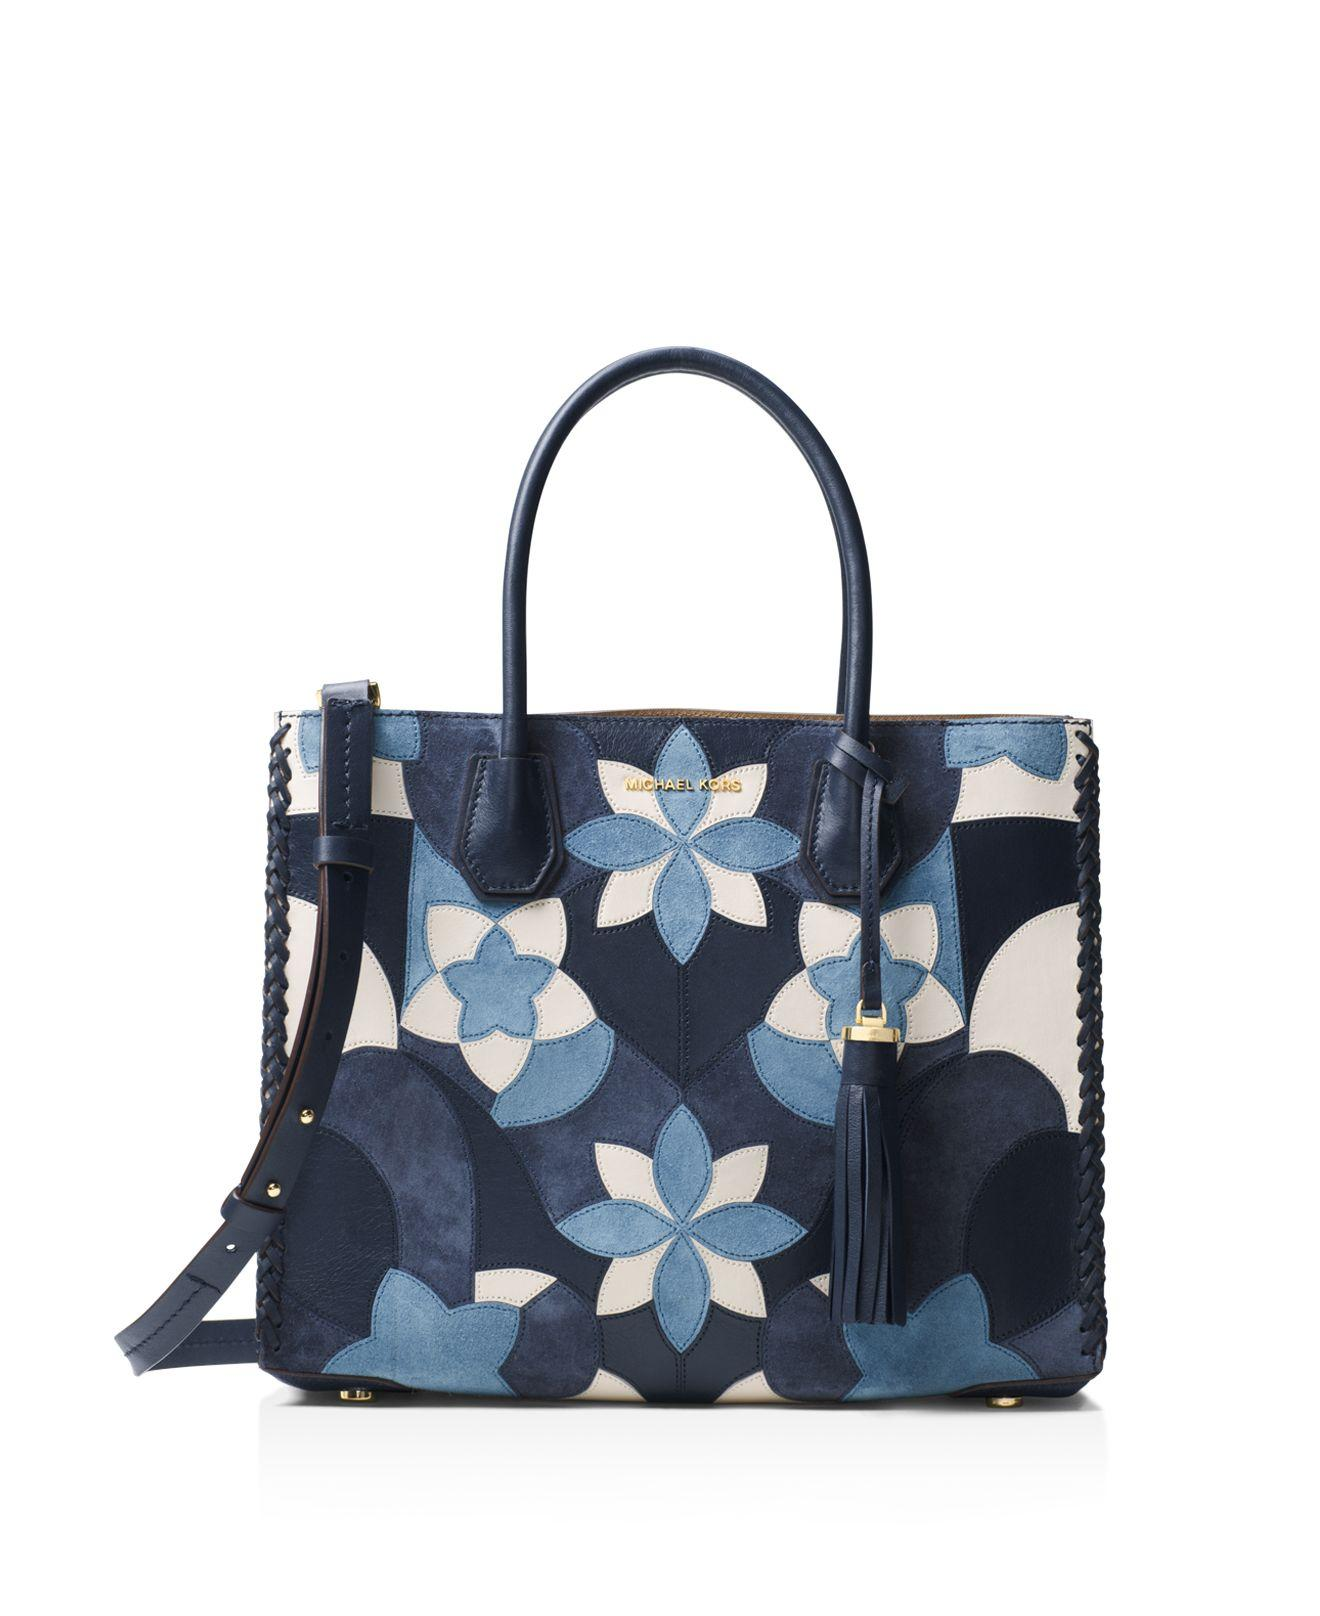 Michael Michael Kors Studio Mercer Floral Patchwork Convertible Large Leather Tote In Blue | Lyst